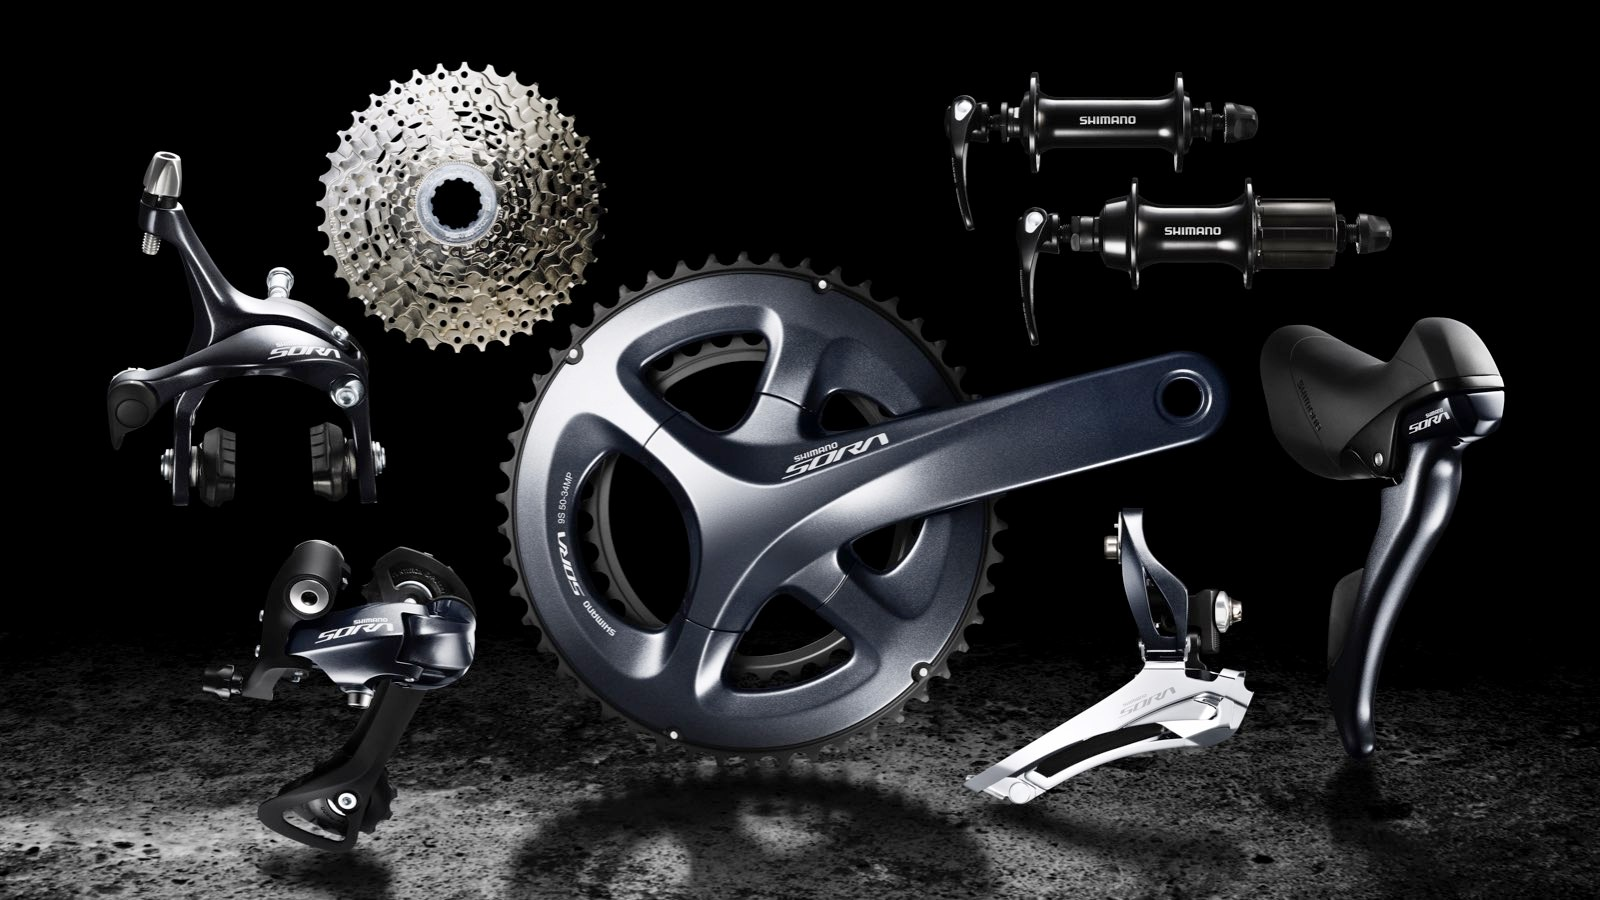 Shimano's new Sora R3000 groupset